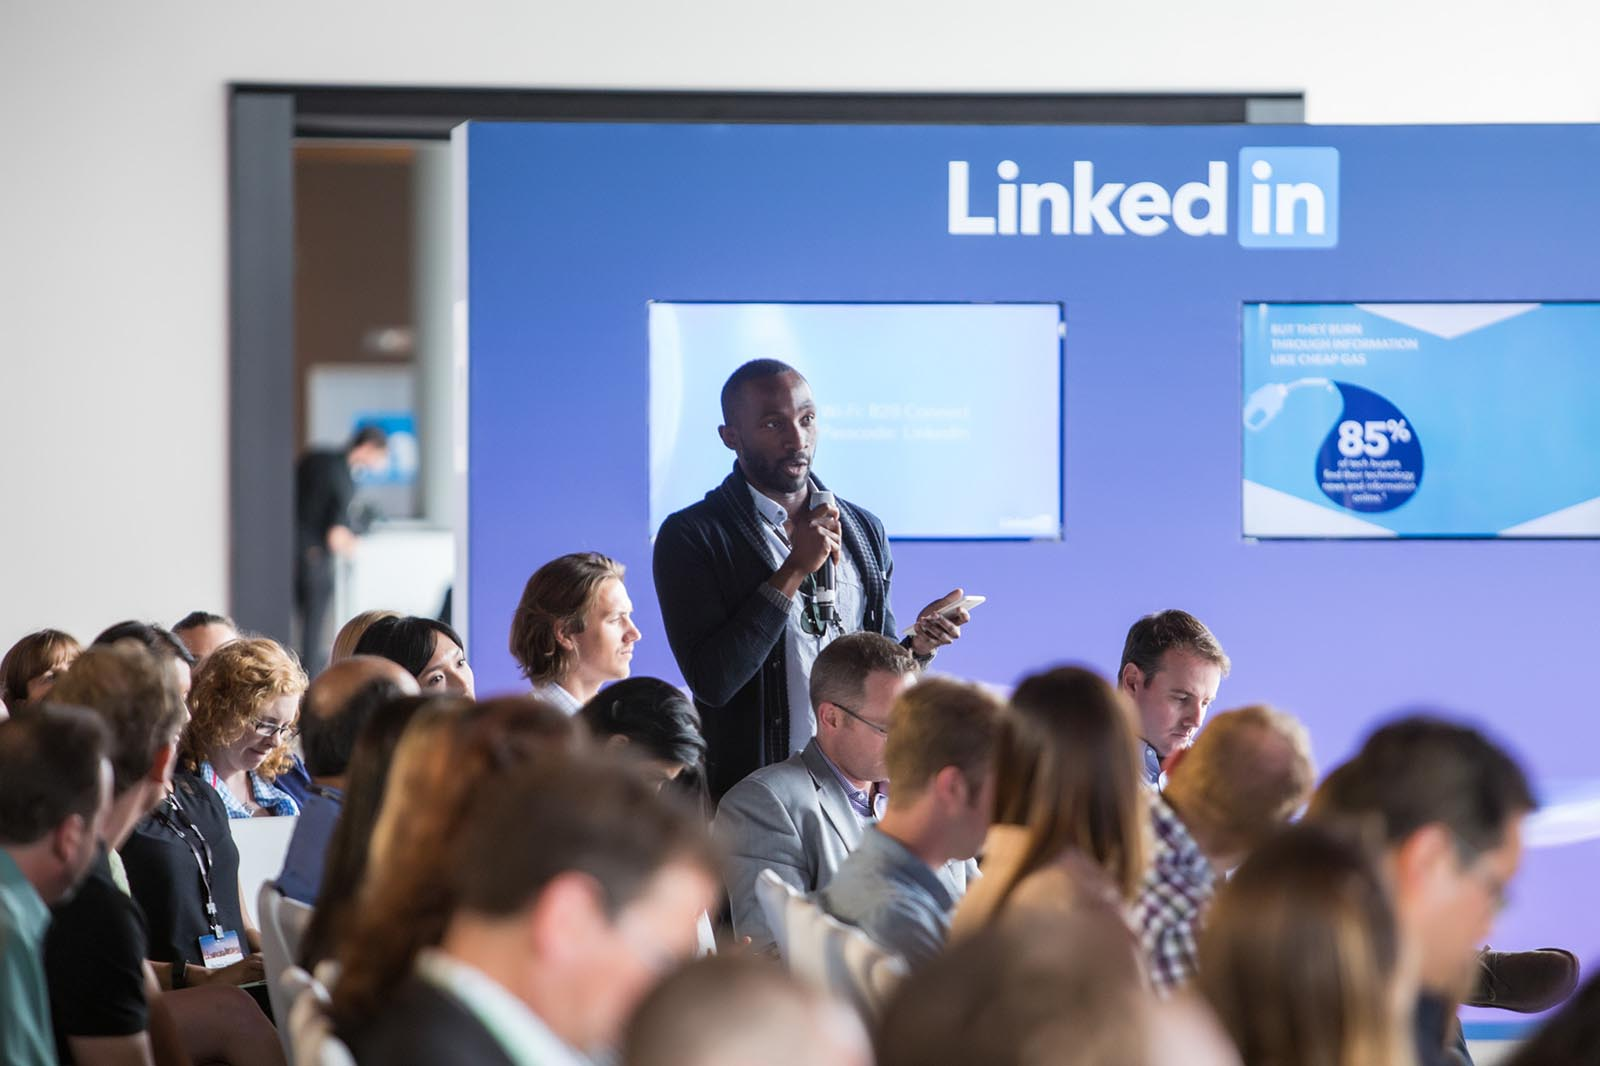 LinkedIn, B2B, Social Network, Business, Invisible North, Creative, Strategy, Design, Production, Event, Talk, Conversation, Interaction, Professional, Events, Brand, Experience, Experiential, Media, Tour